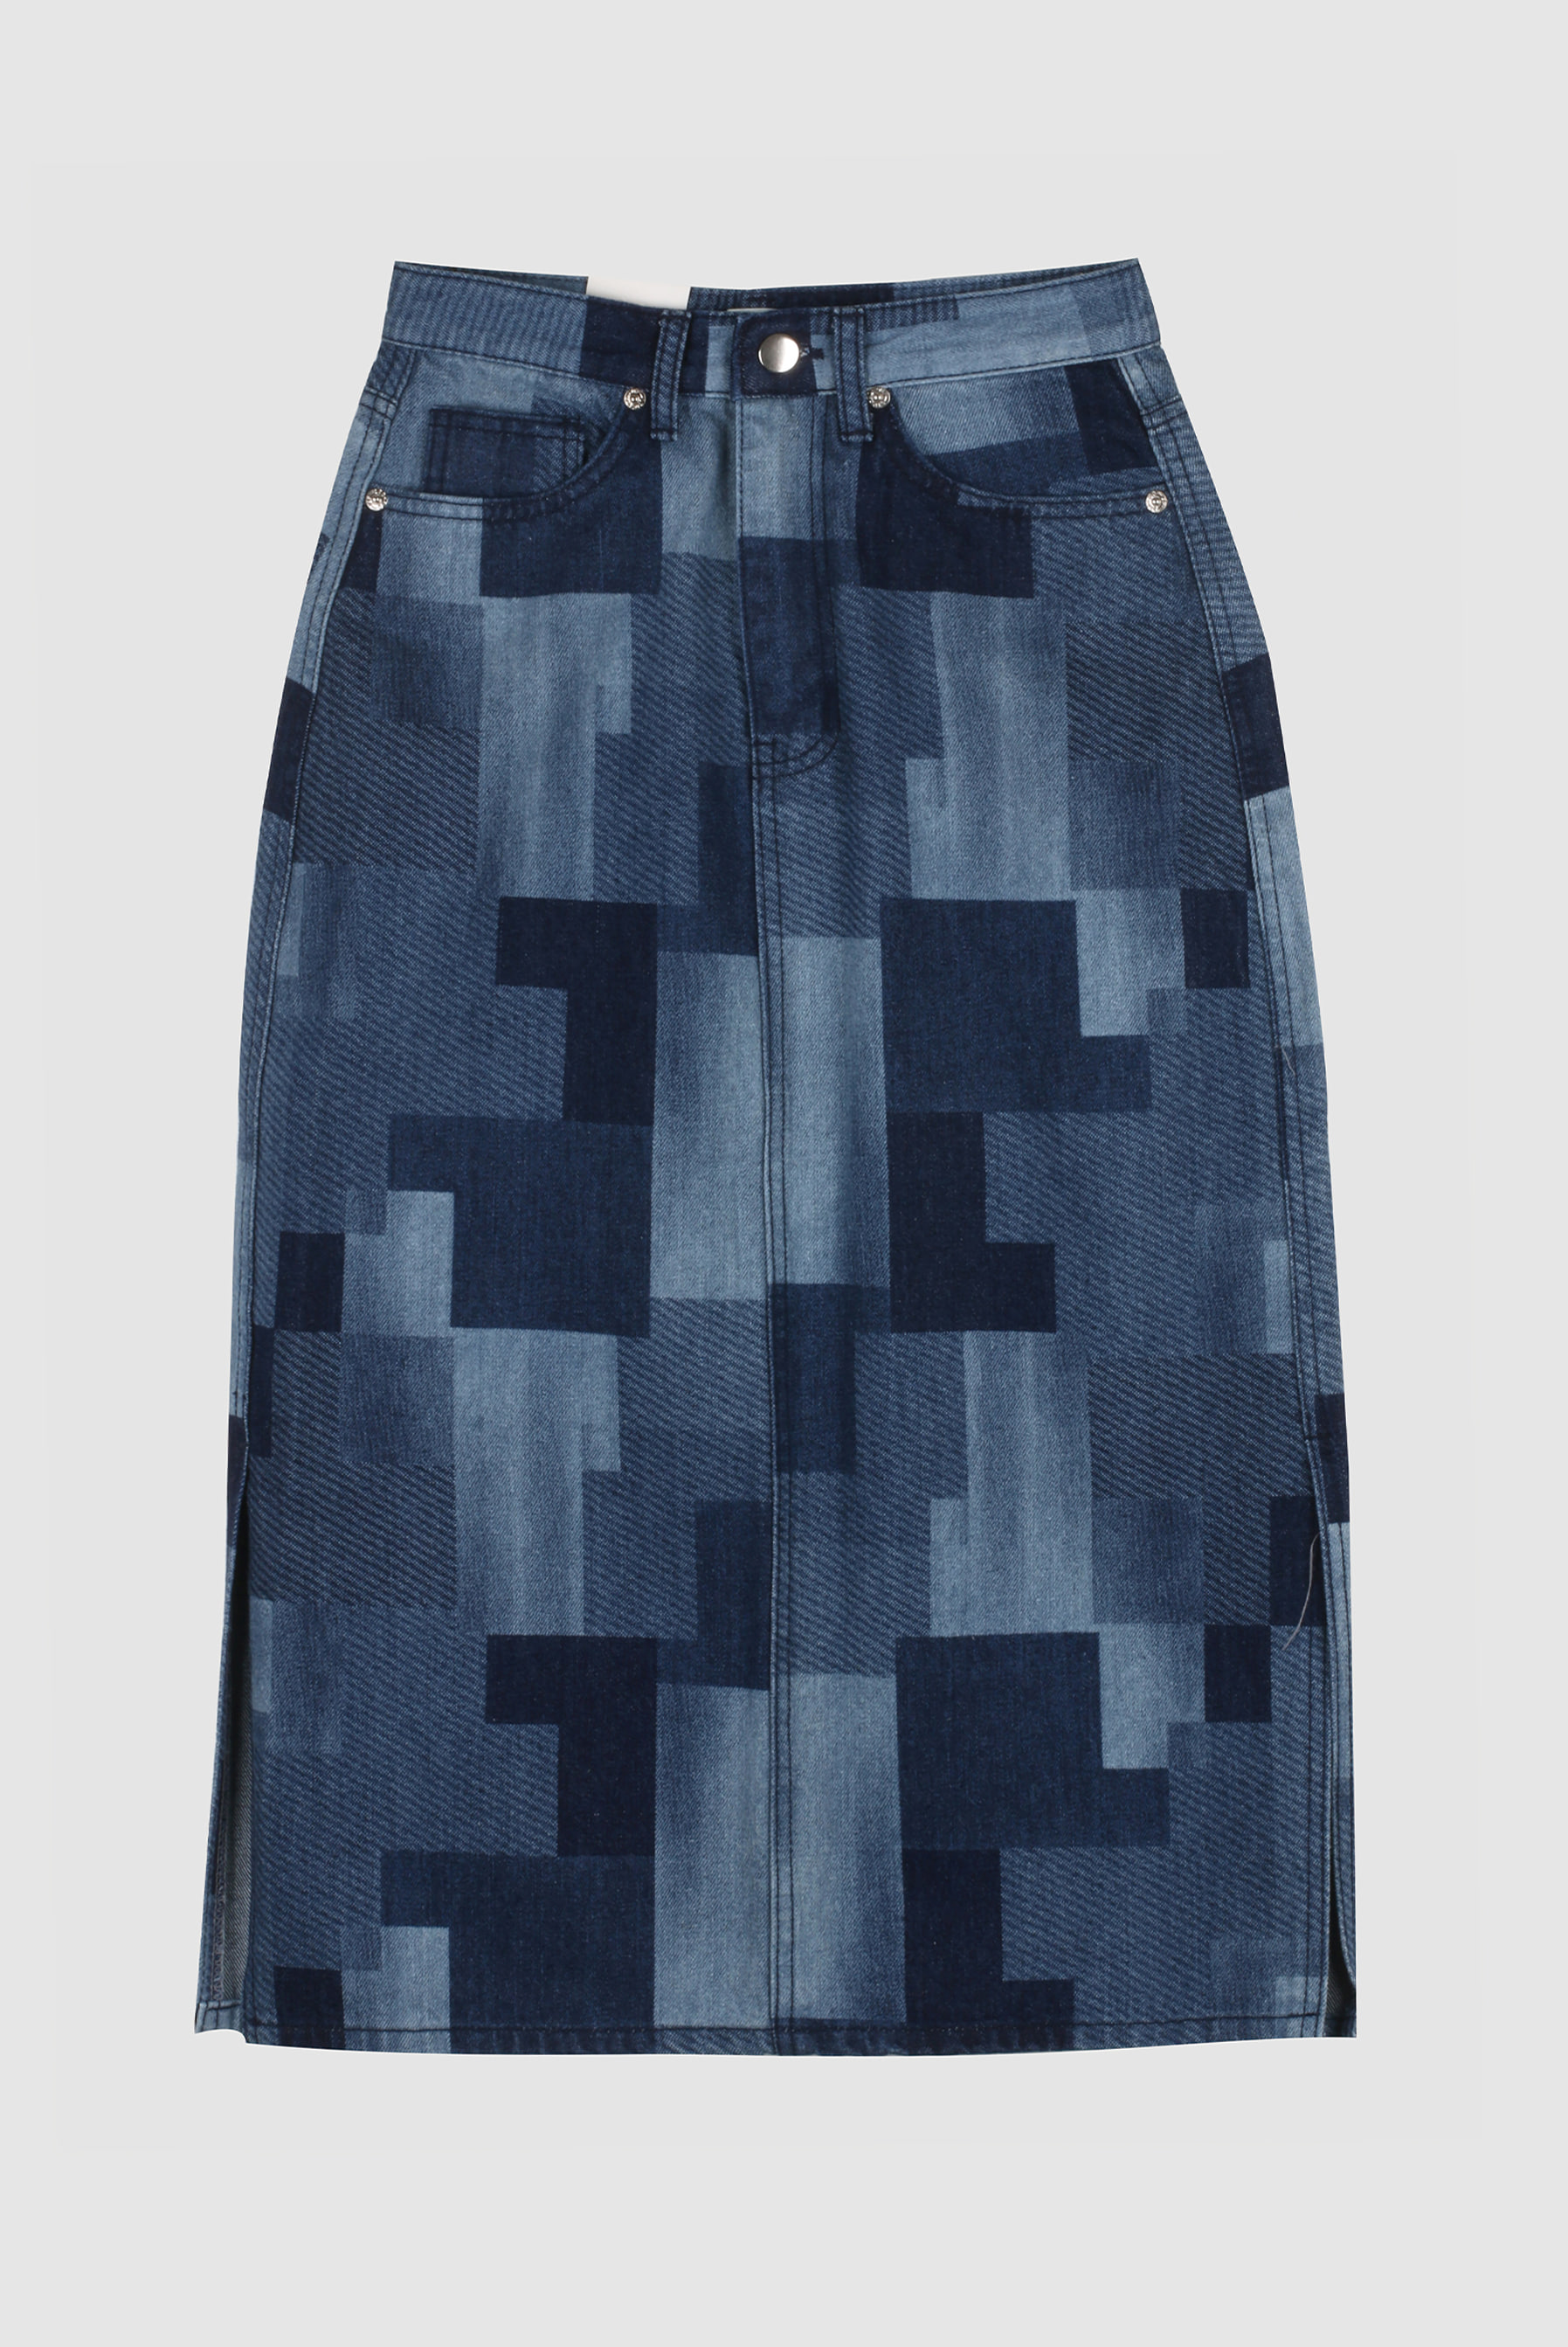 Patch_Denim_Skirt